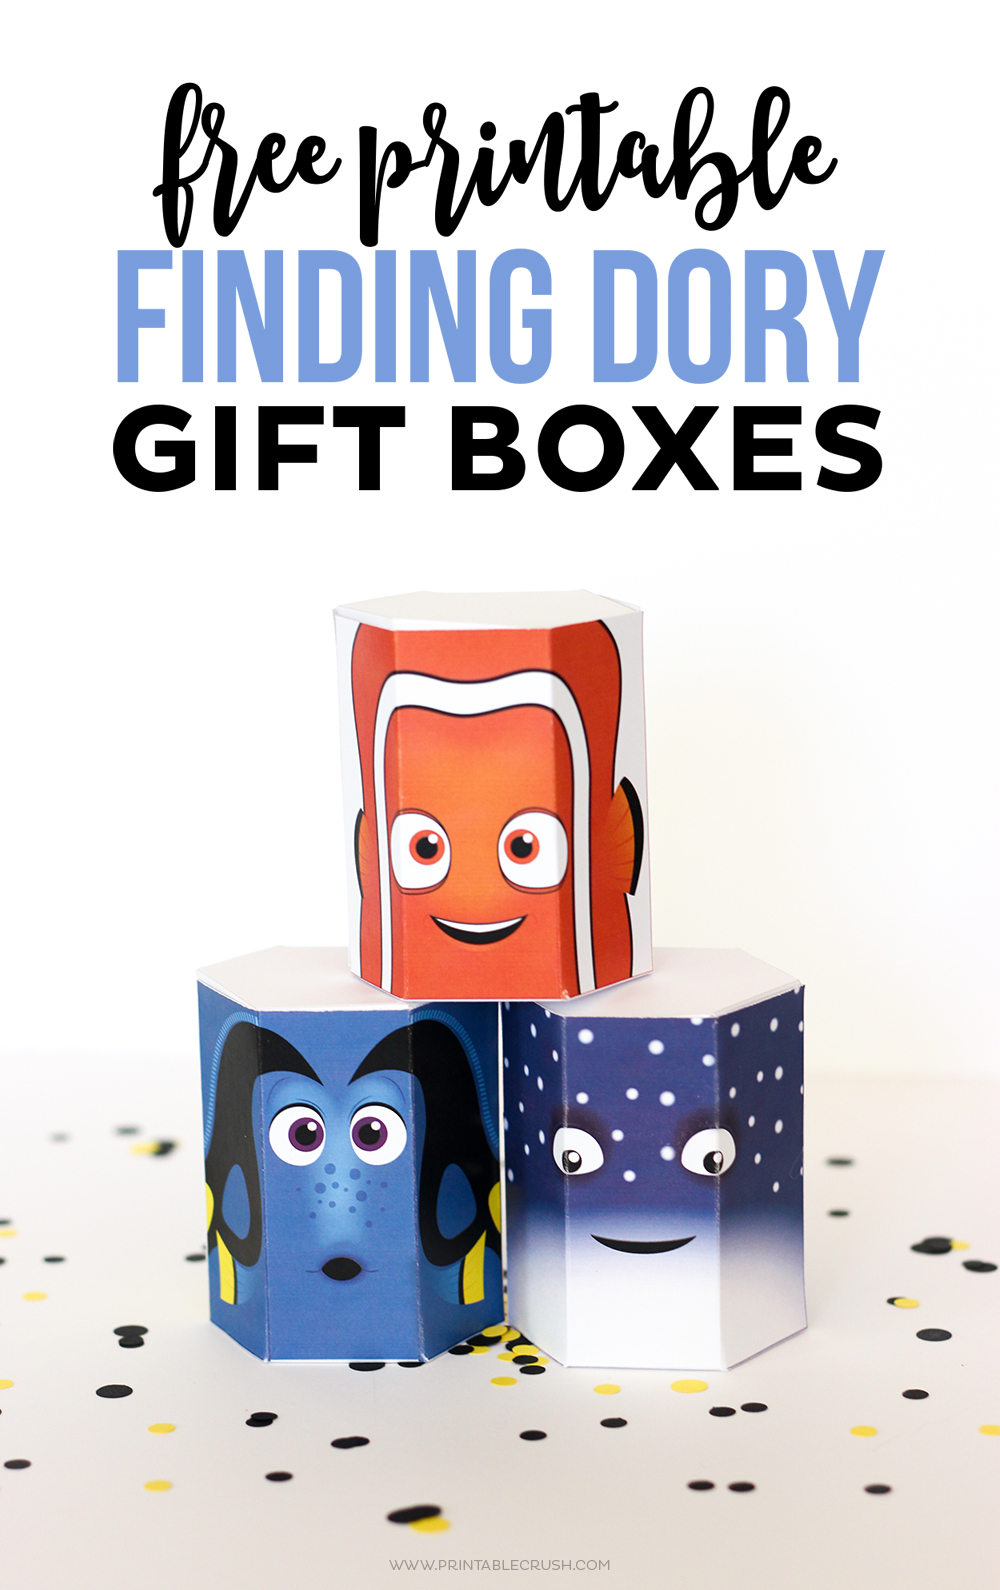 These FREE Finding Dory Printable Gift Boxes are perfect for the little Finding Nemo fan in your life. You can fill them with treats, presents or cute Tsum Tsums!